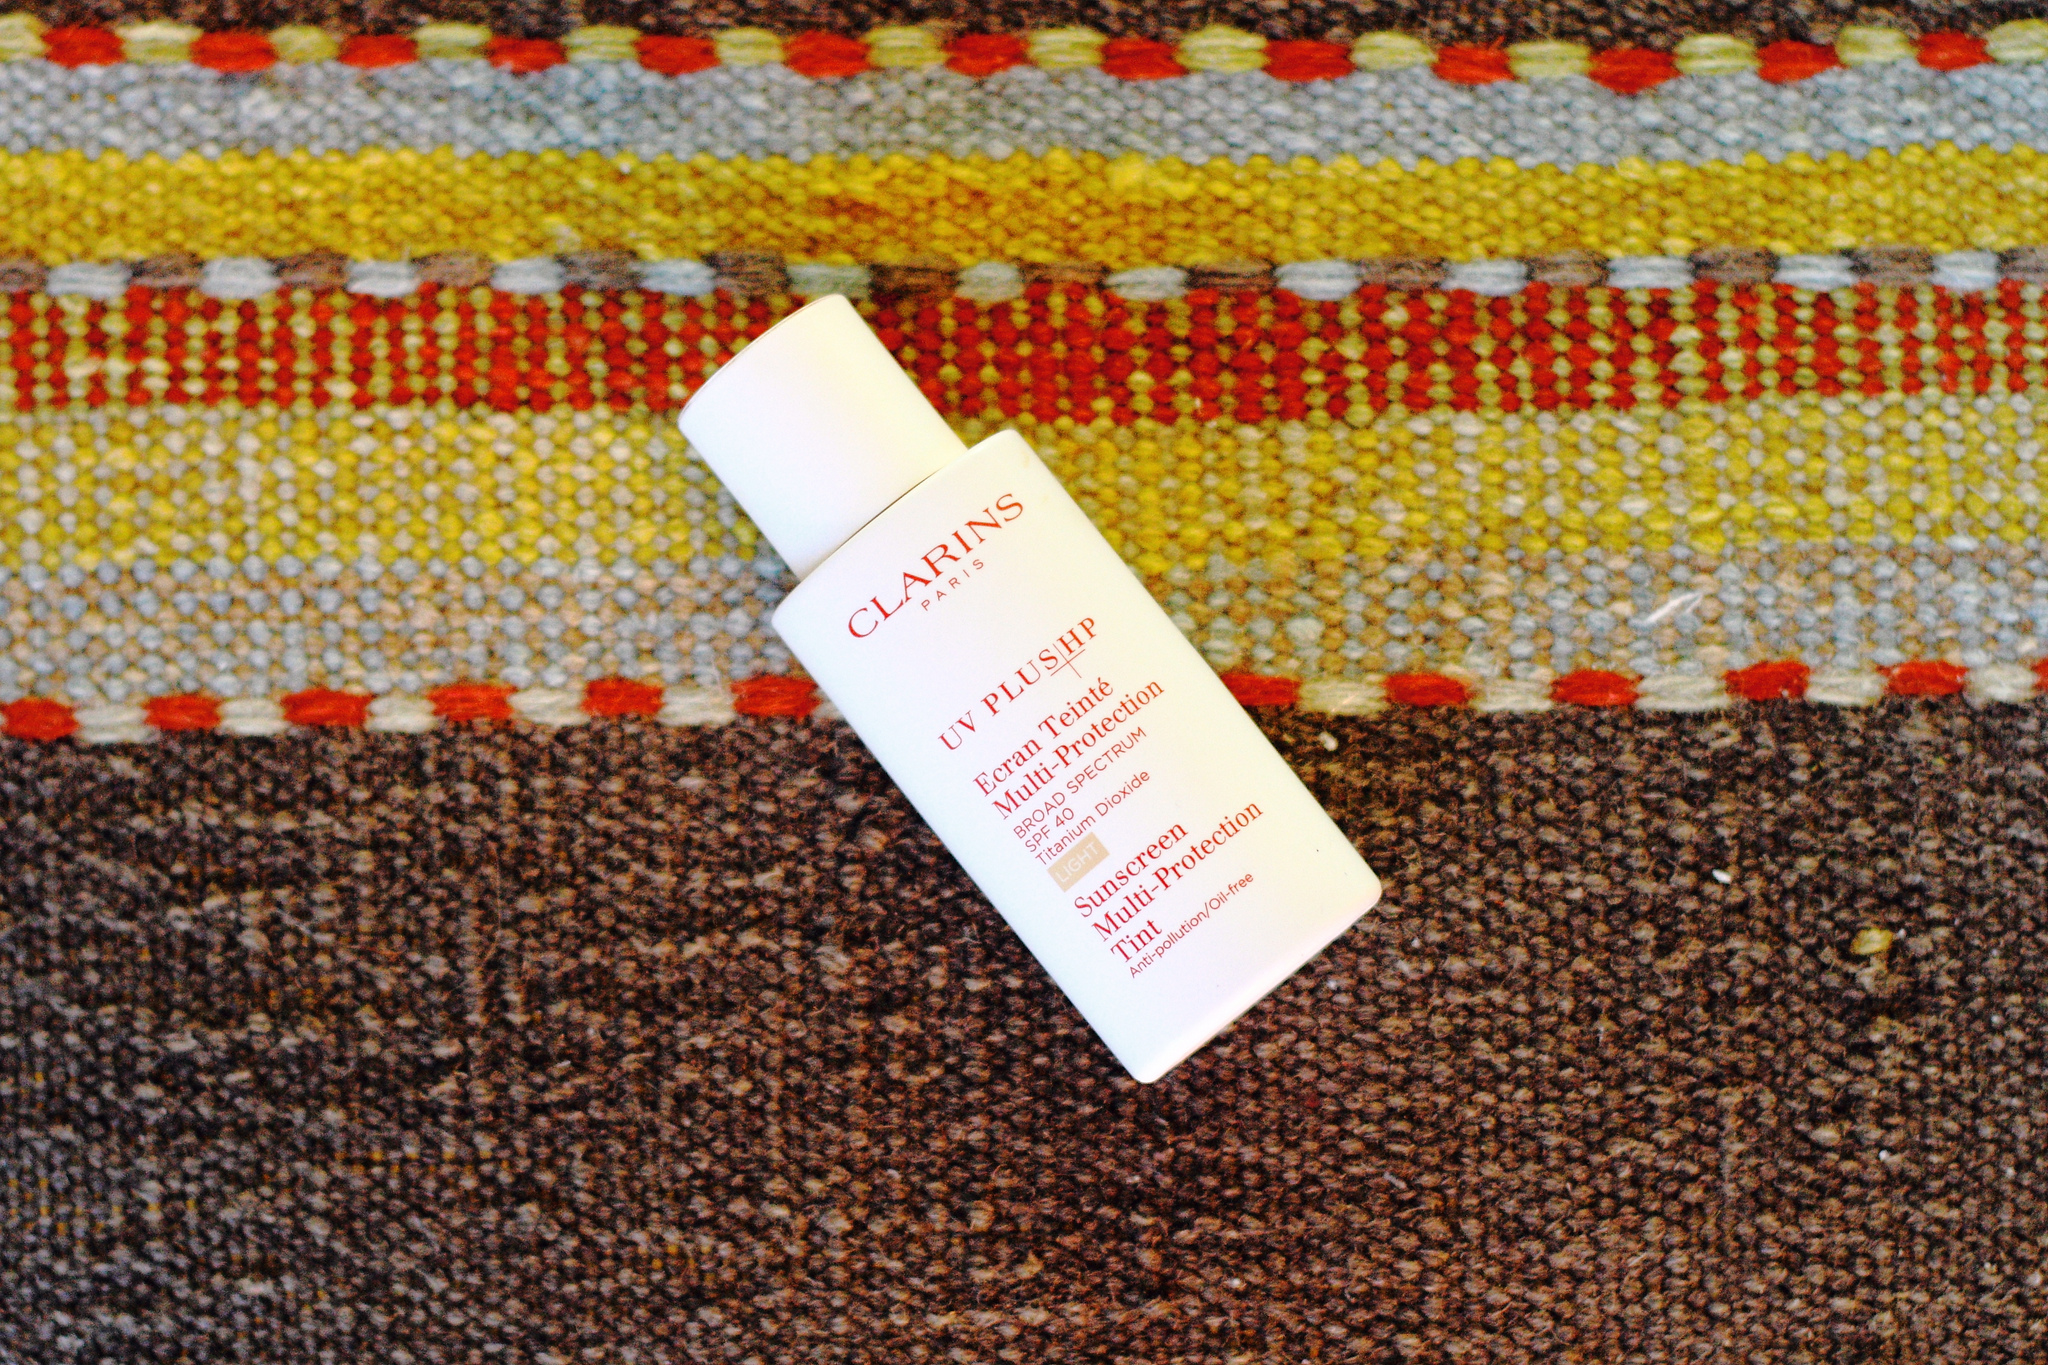 Clarins tinted sunscreen